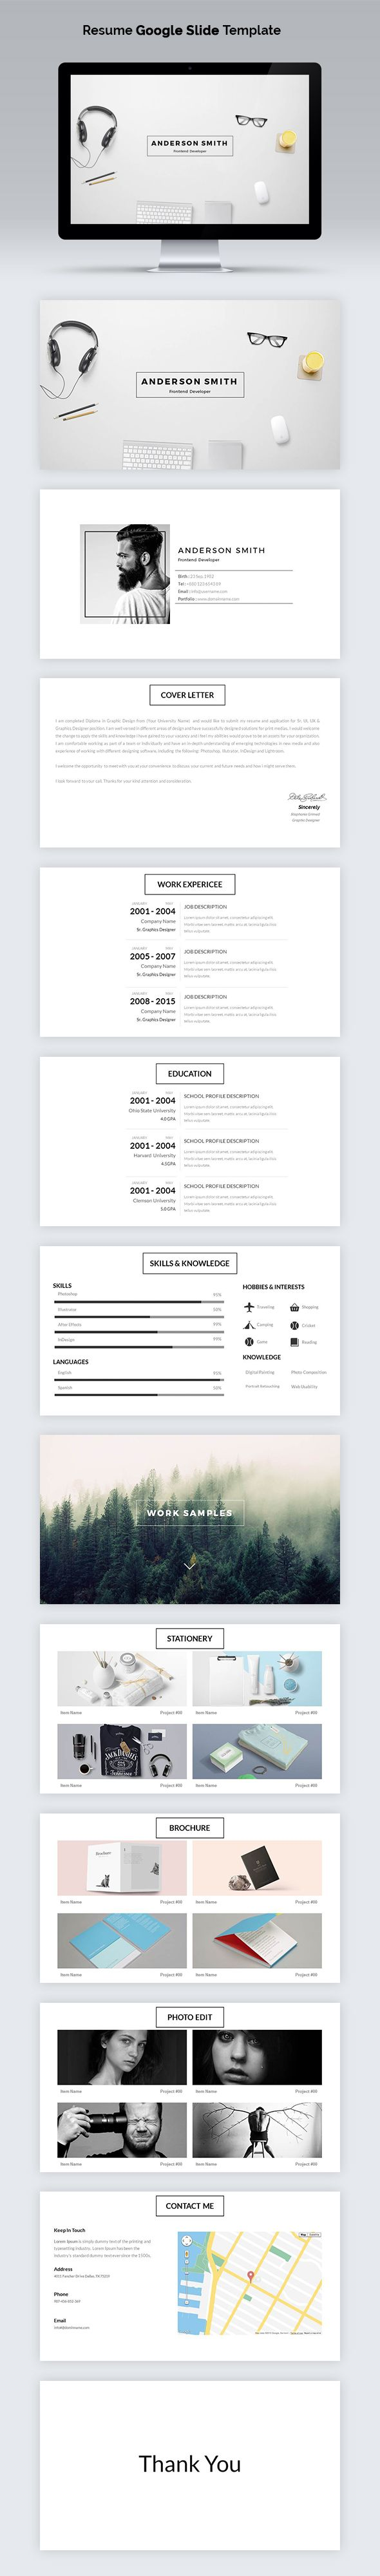 Resume Google Slide Template - Google Slides Presentation Templates